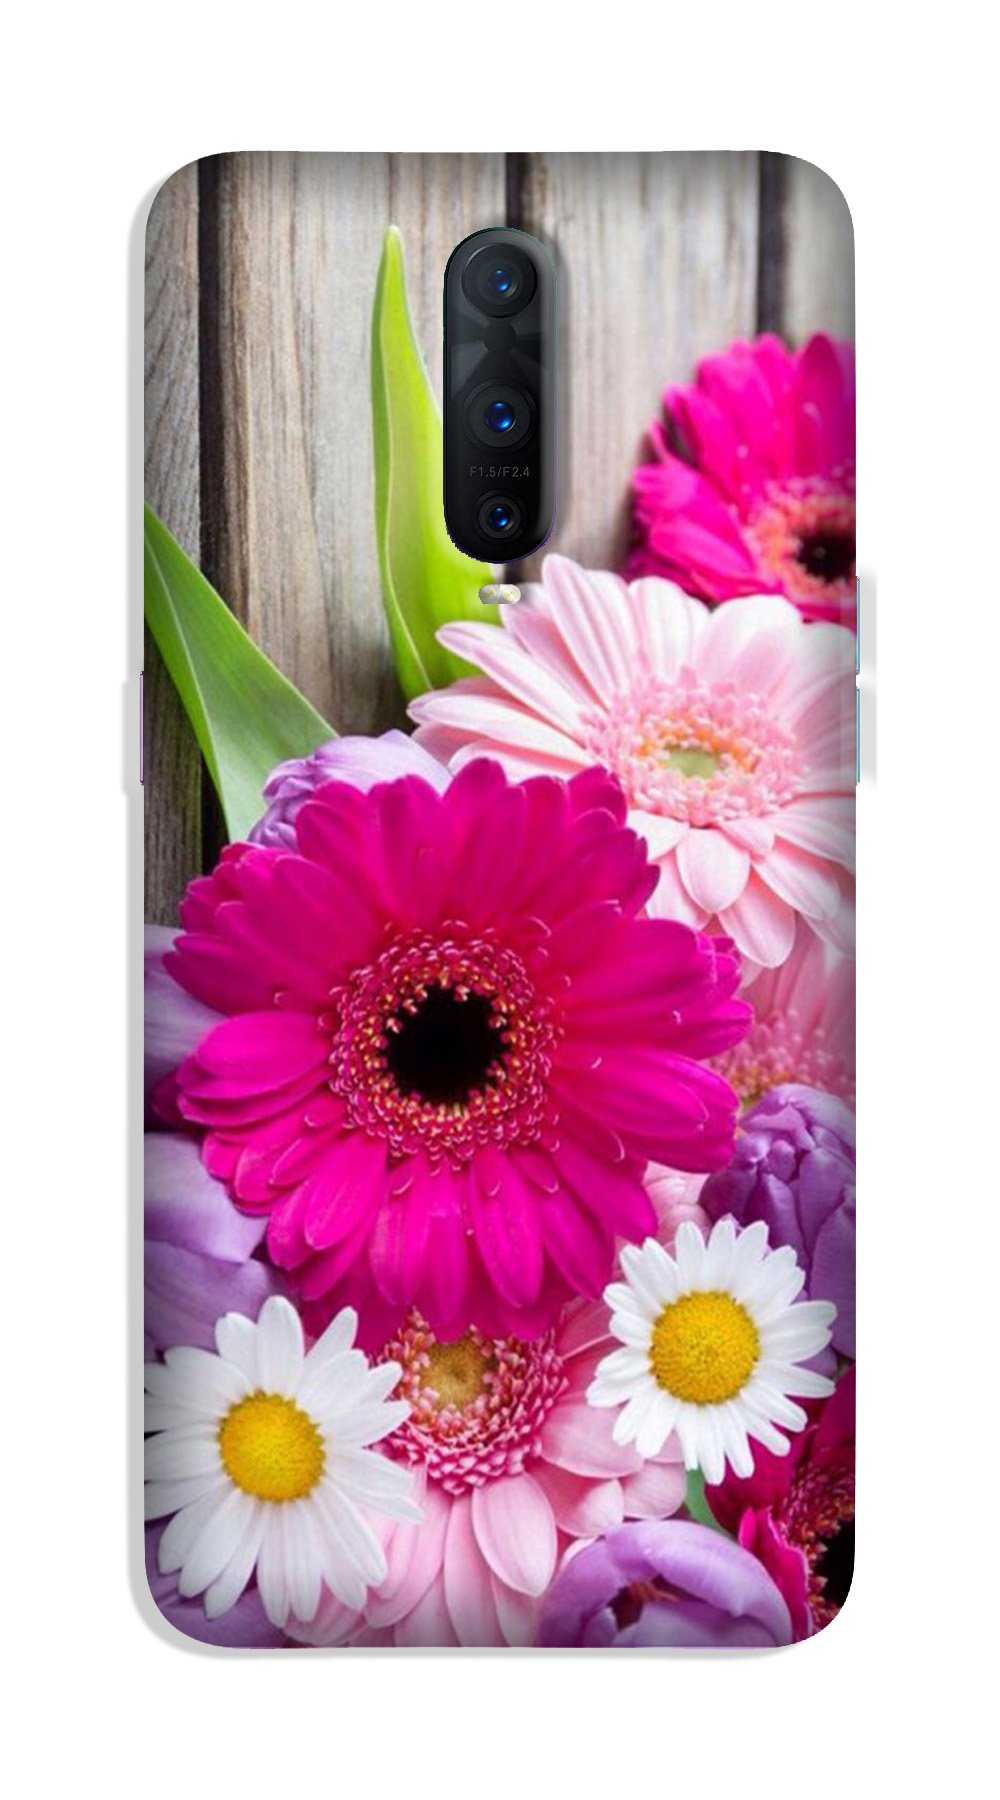 Coloful Daisy2 Case for OnePlus 7 Pro